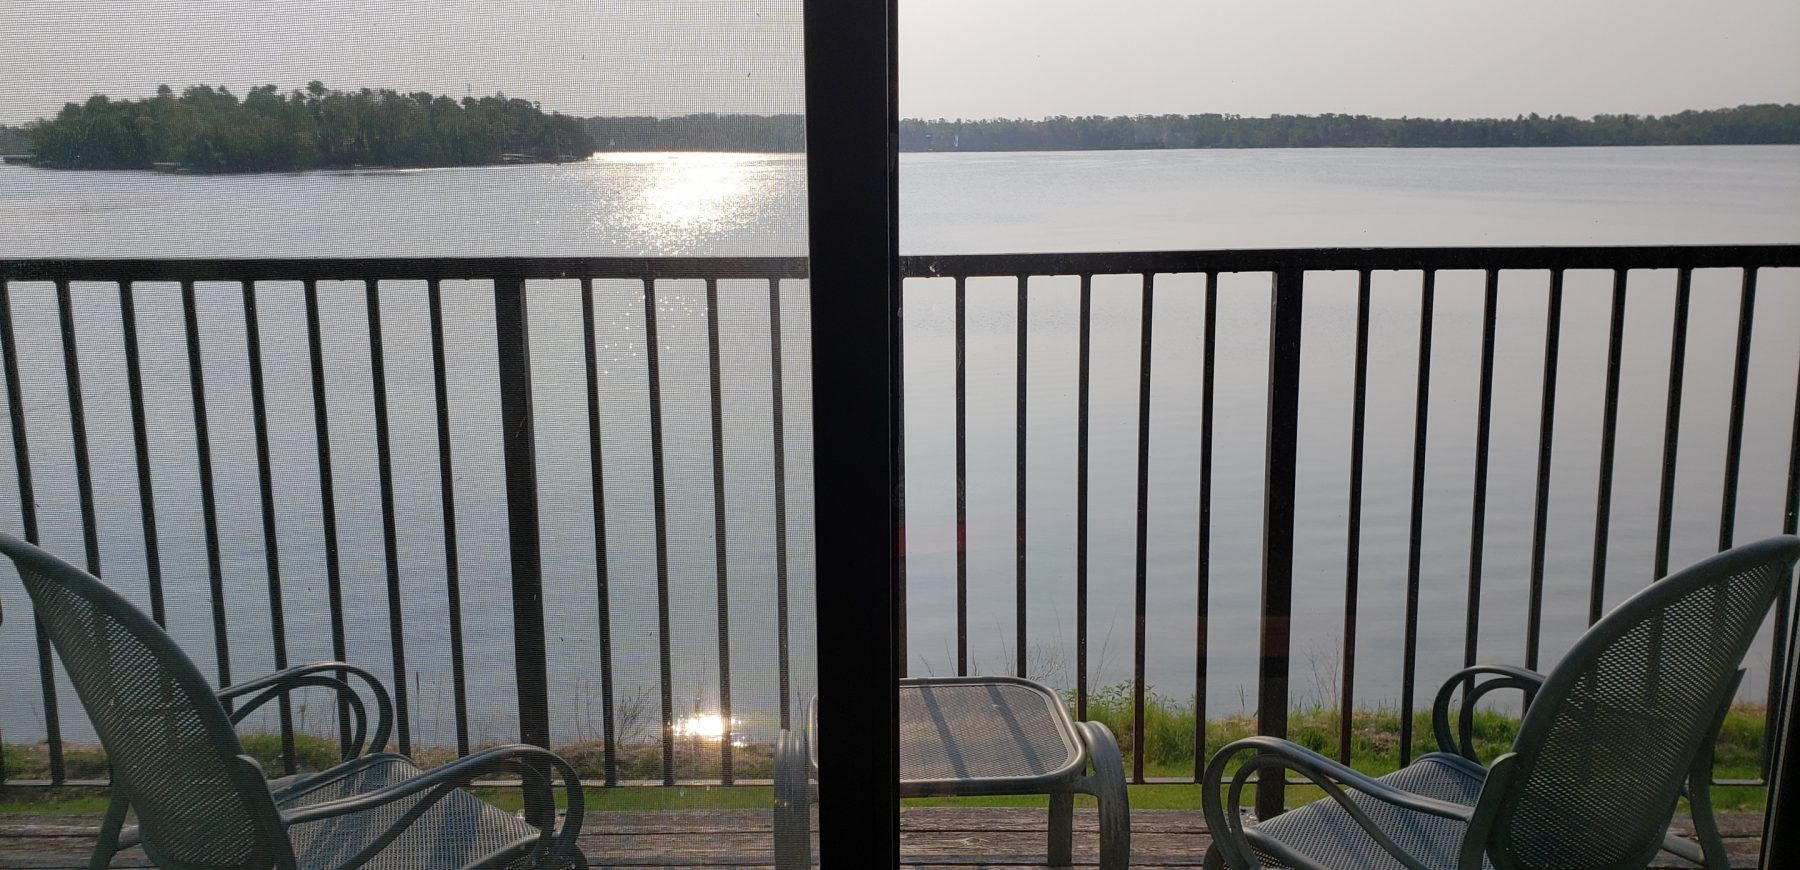 two chairs on a deck overlooking a lake